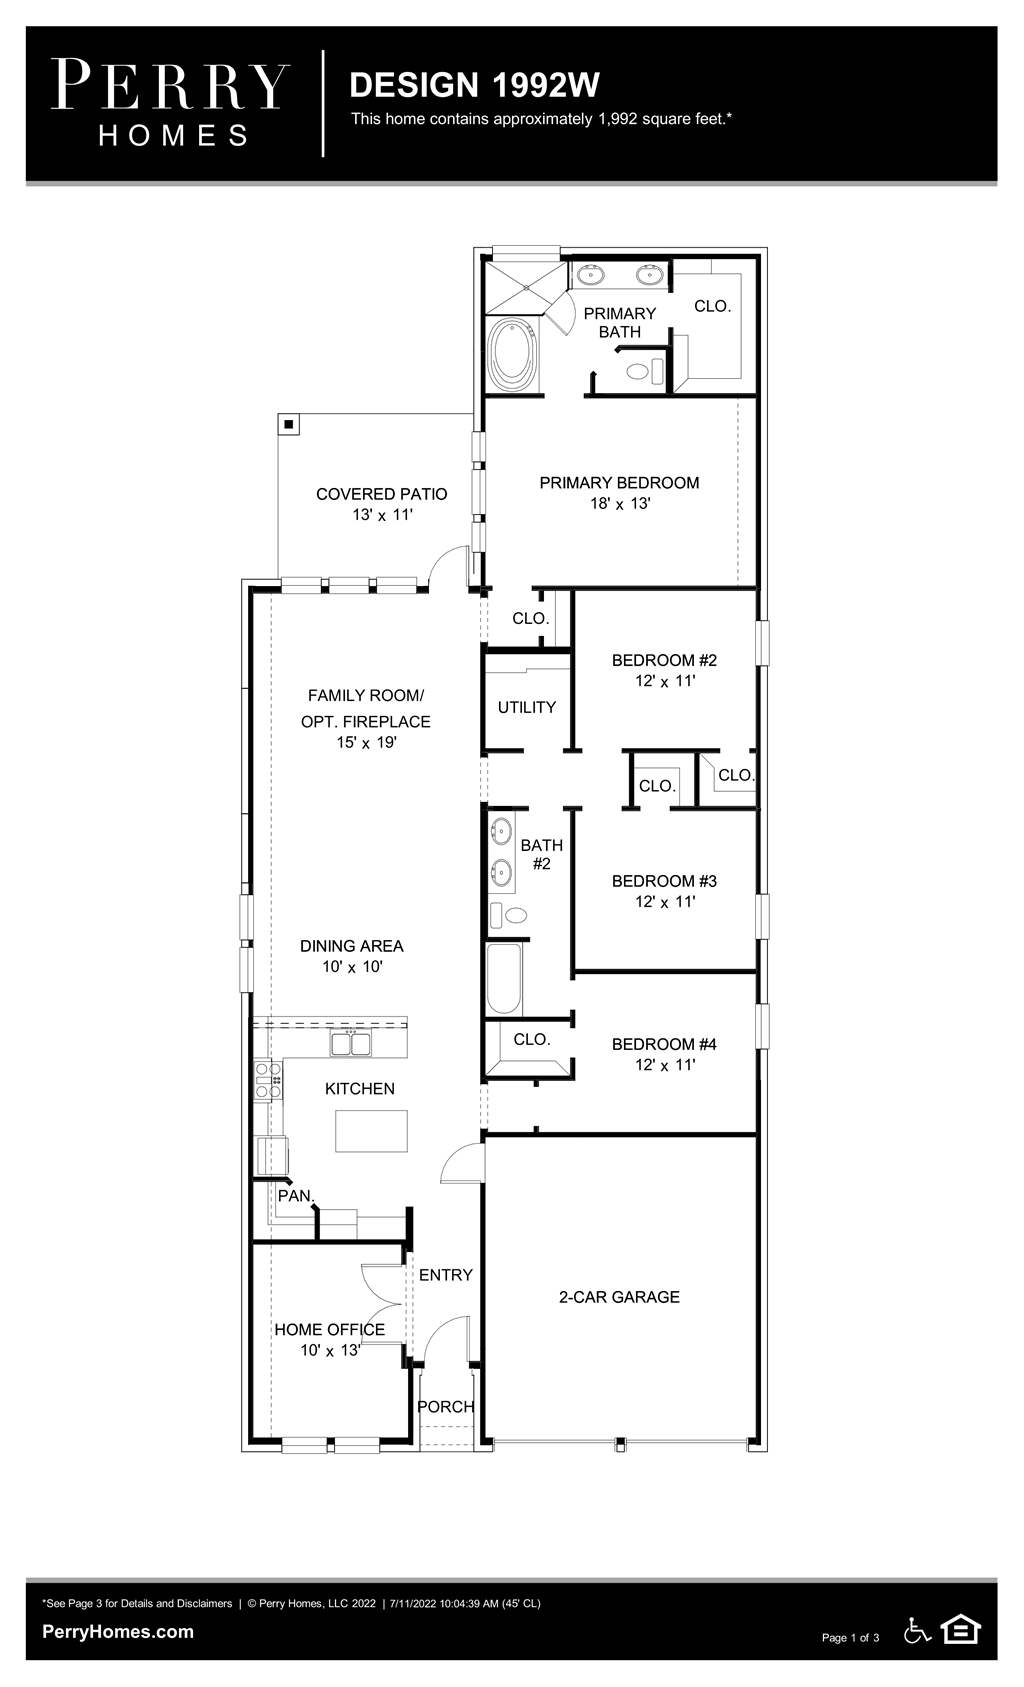 Floor Plan for 1992W